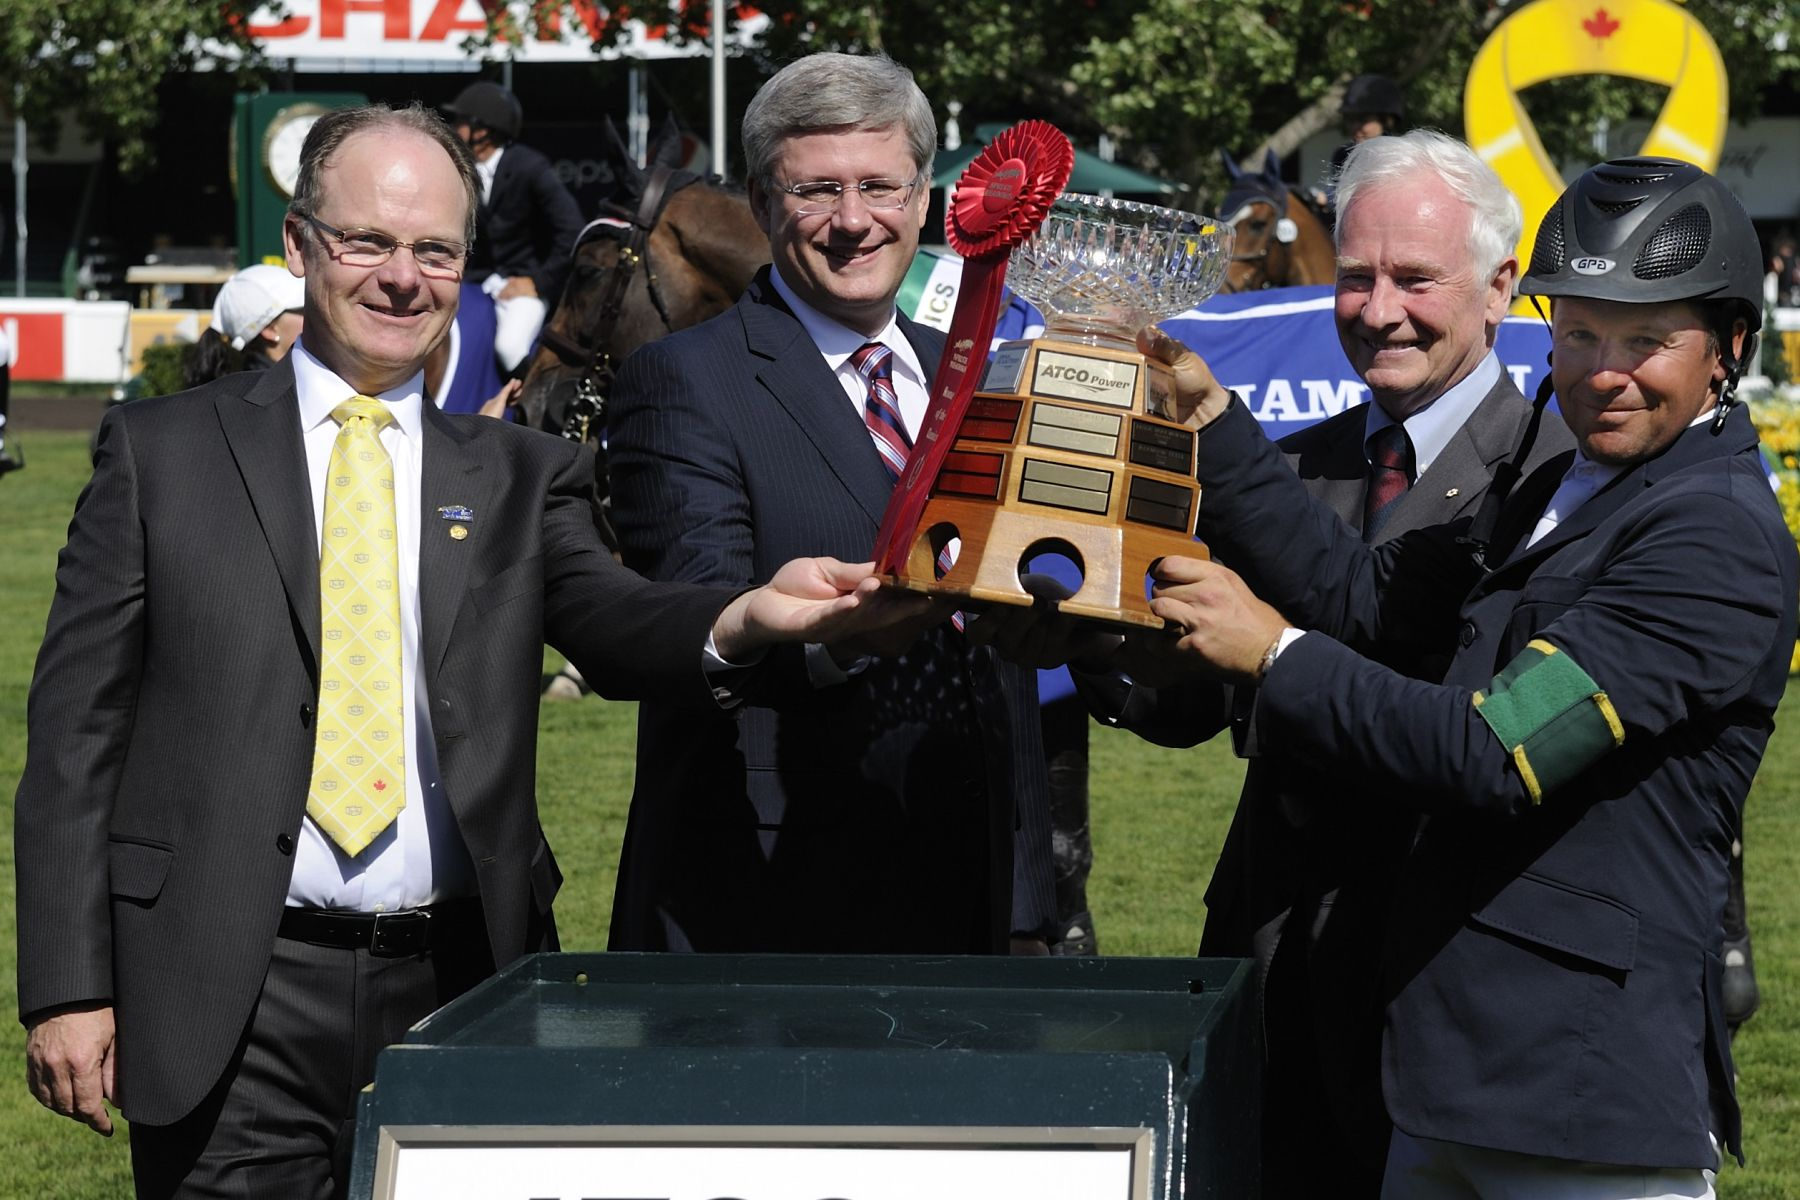 The Governor General and Prime Minister presented the Queen Elizabeth II Cup to this year's winner Canadian Olympic Gold Medalist at the 2008 Beijing Games Eric Lamaze.